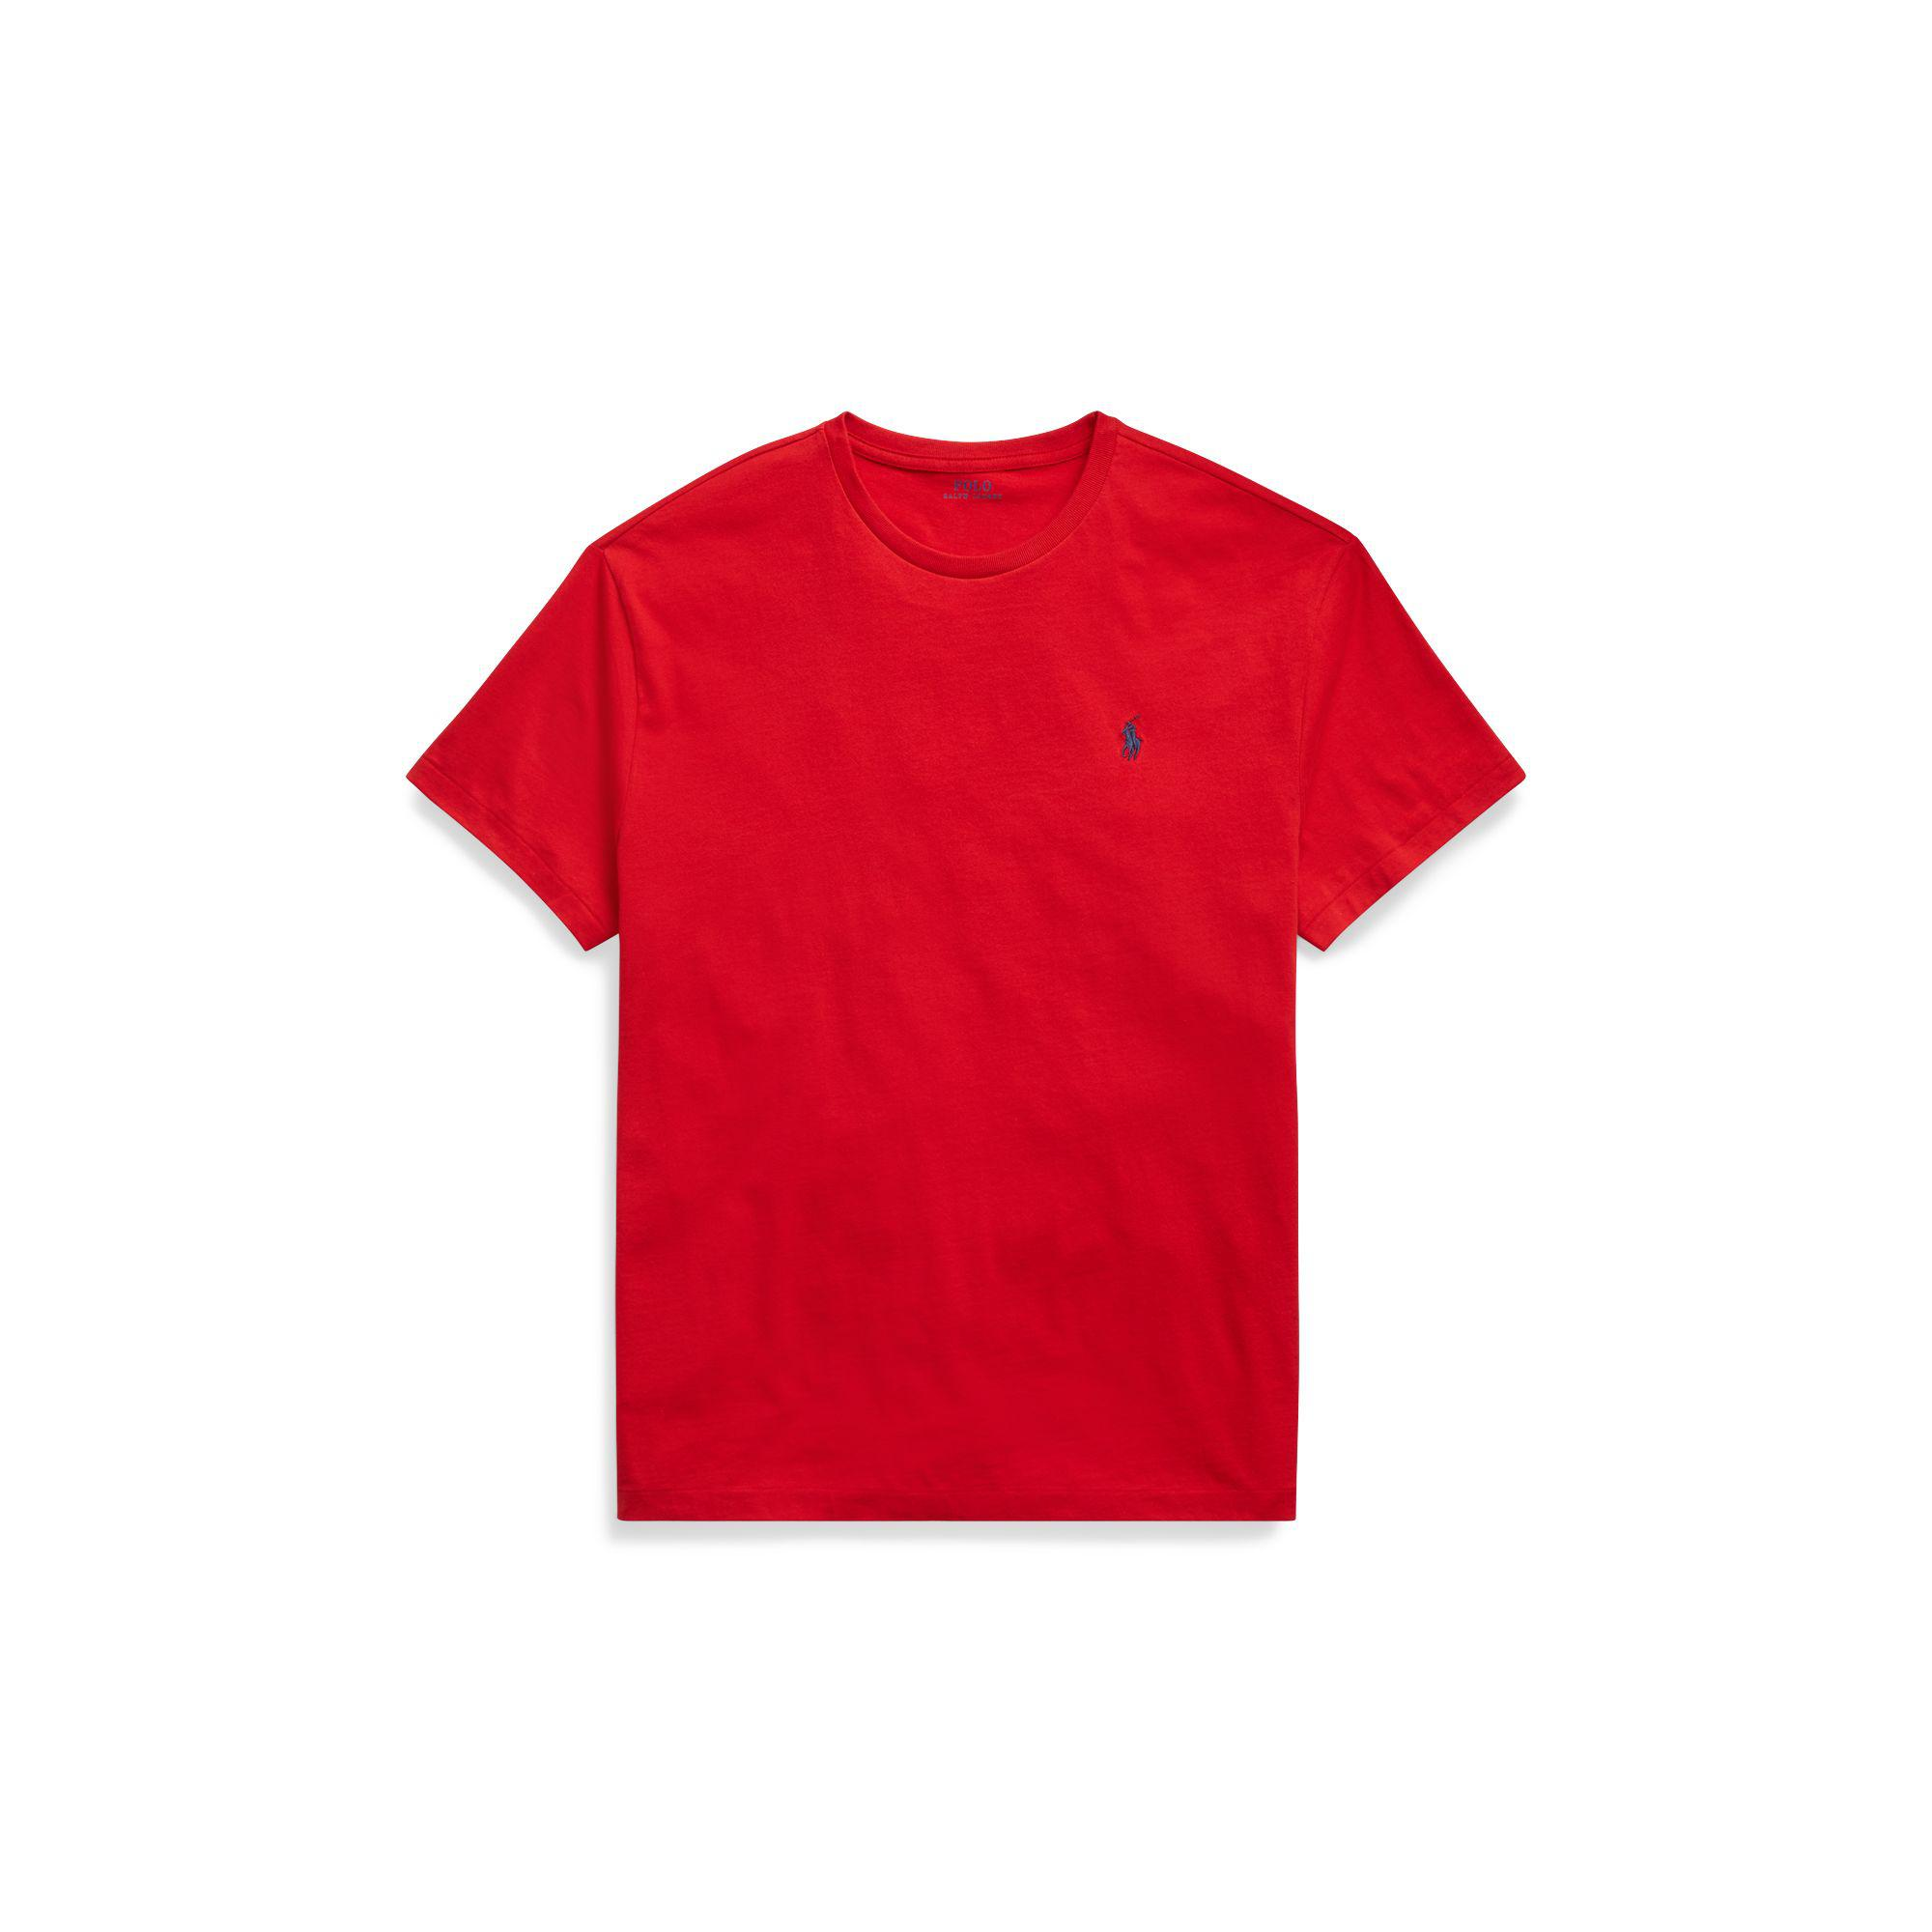 7aab06098cfb6 Polo Ralph Lauren Classic Fit Crewneck Tee in Red for Men - Save 38 ...